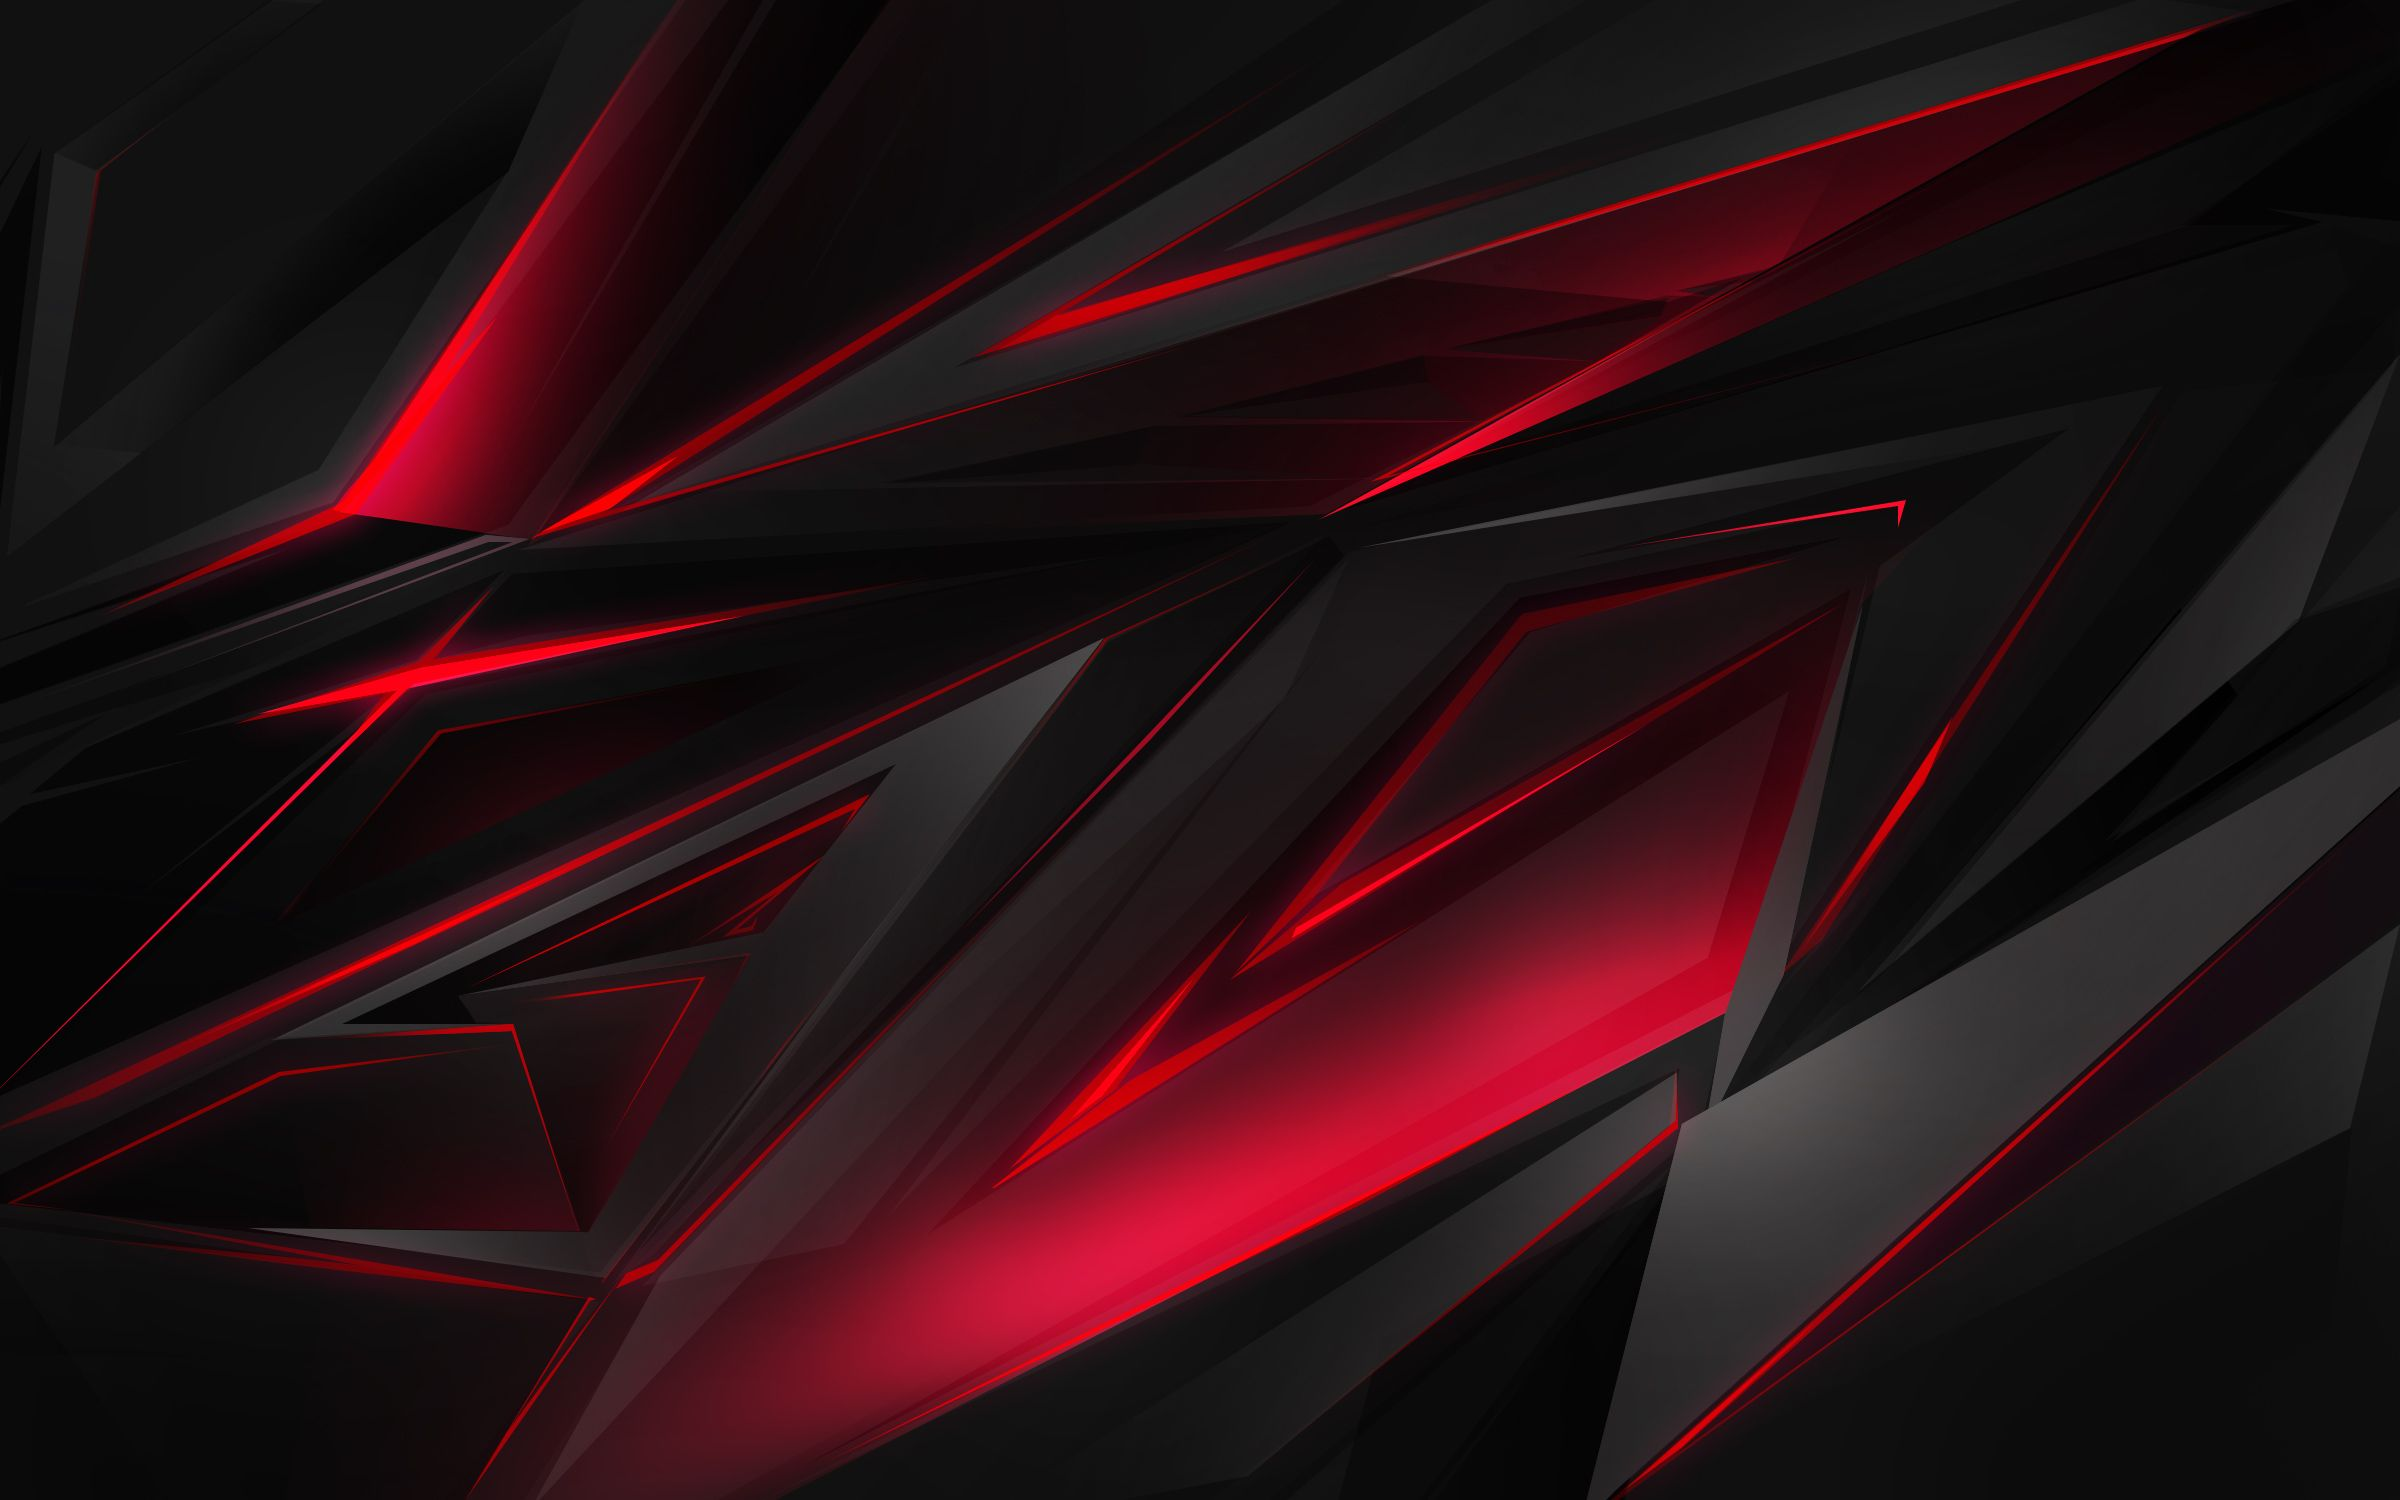 Black And Red Wallpapers Top Free Black And Red Backgrounds Wallpaperaccess